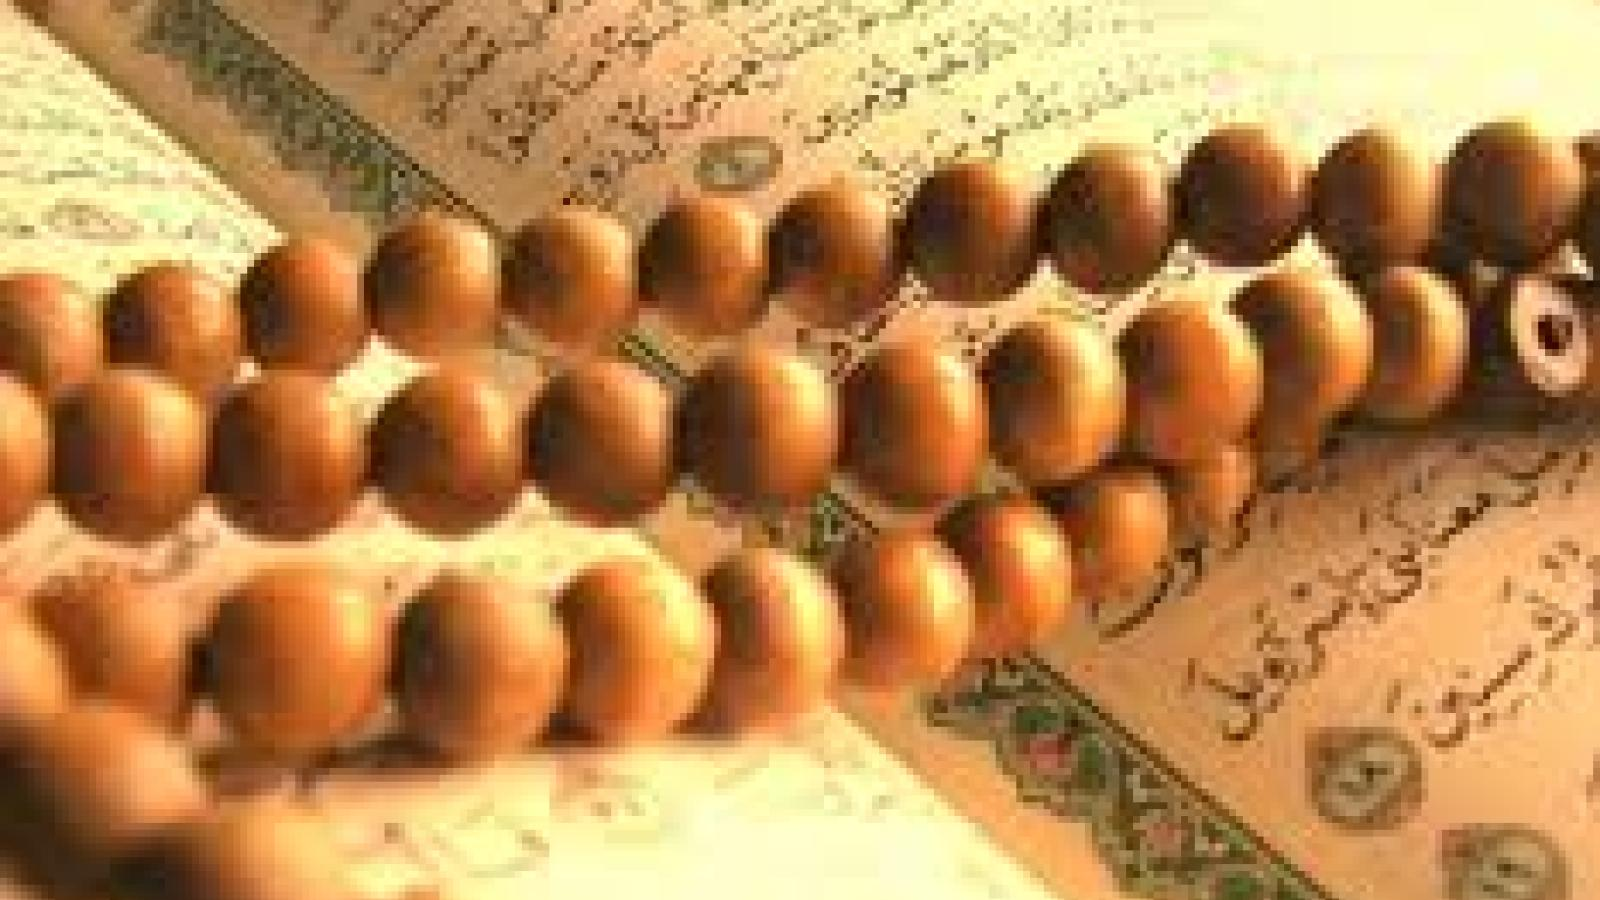 quran and beads